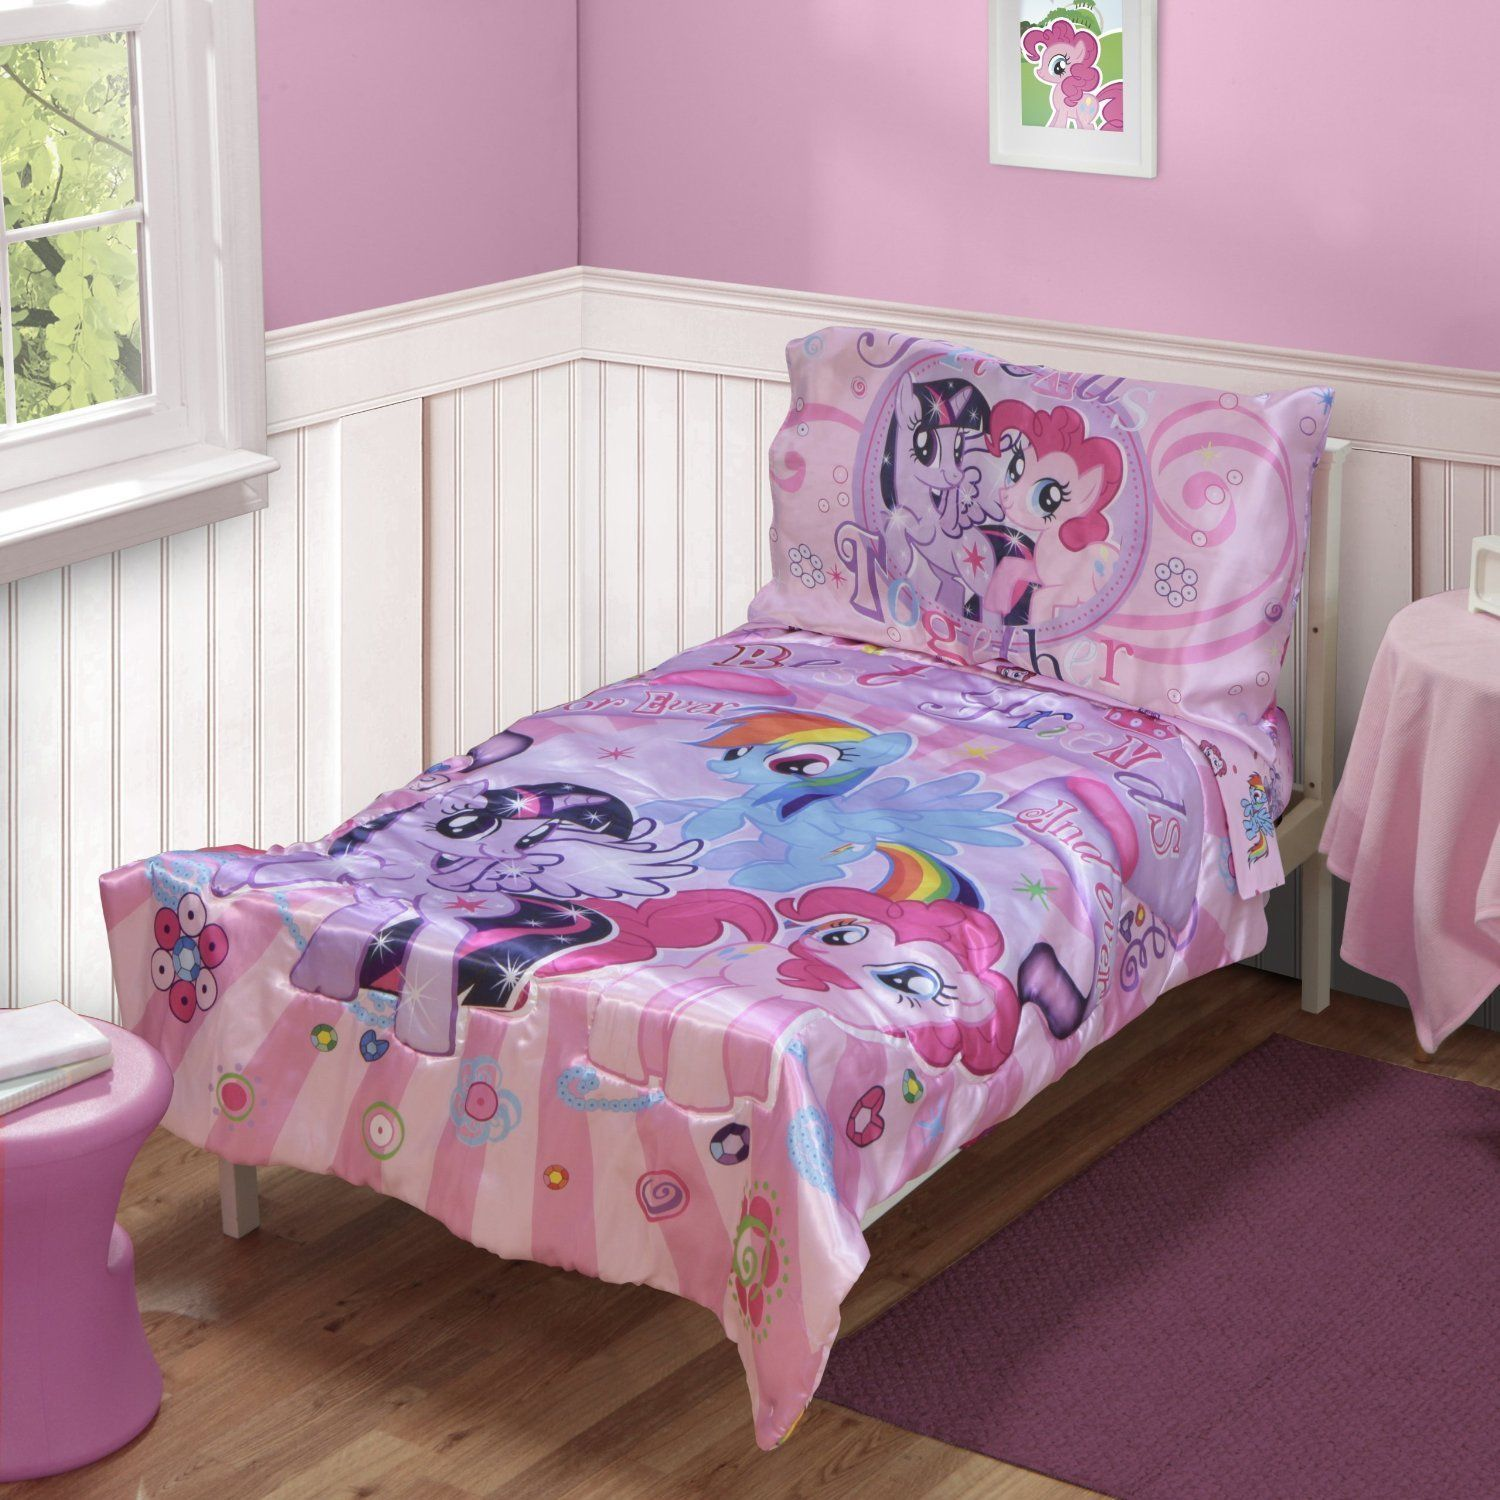 floral girl woodland il pink girls fullxfull bed cover toddler sets duvet kids deer cases set products bedding pillow